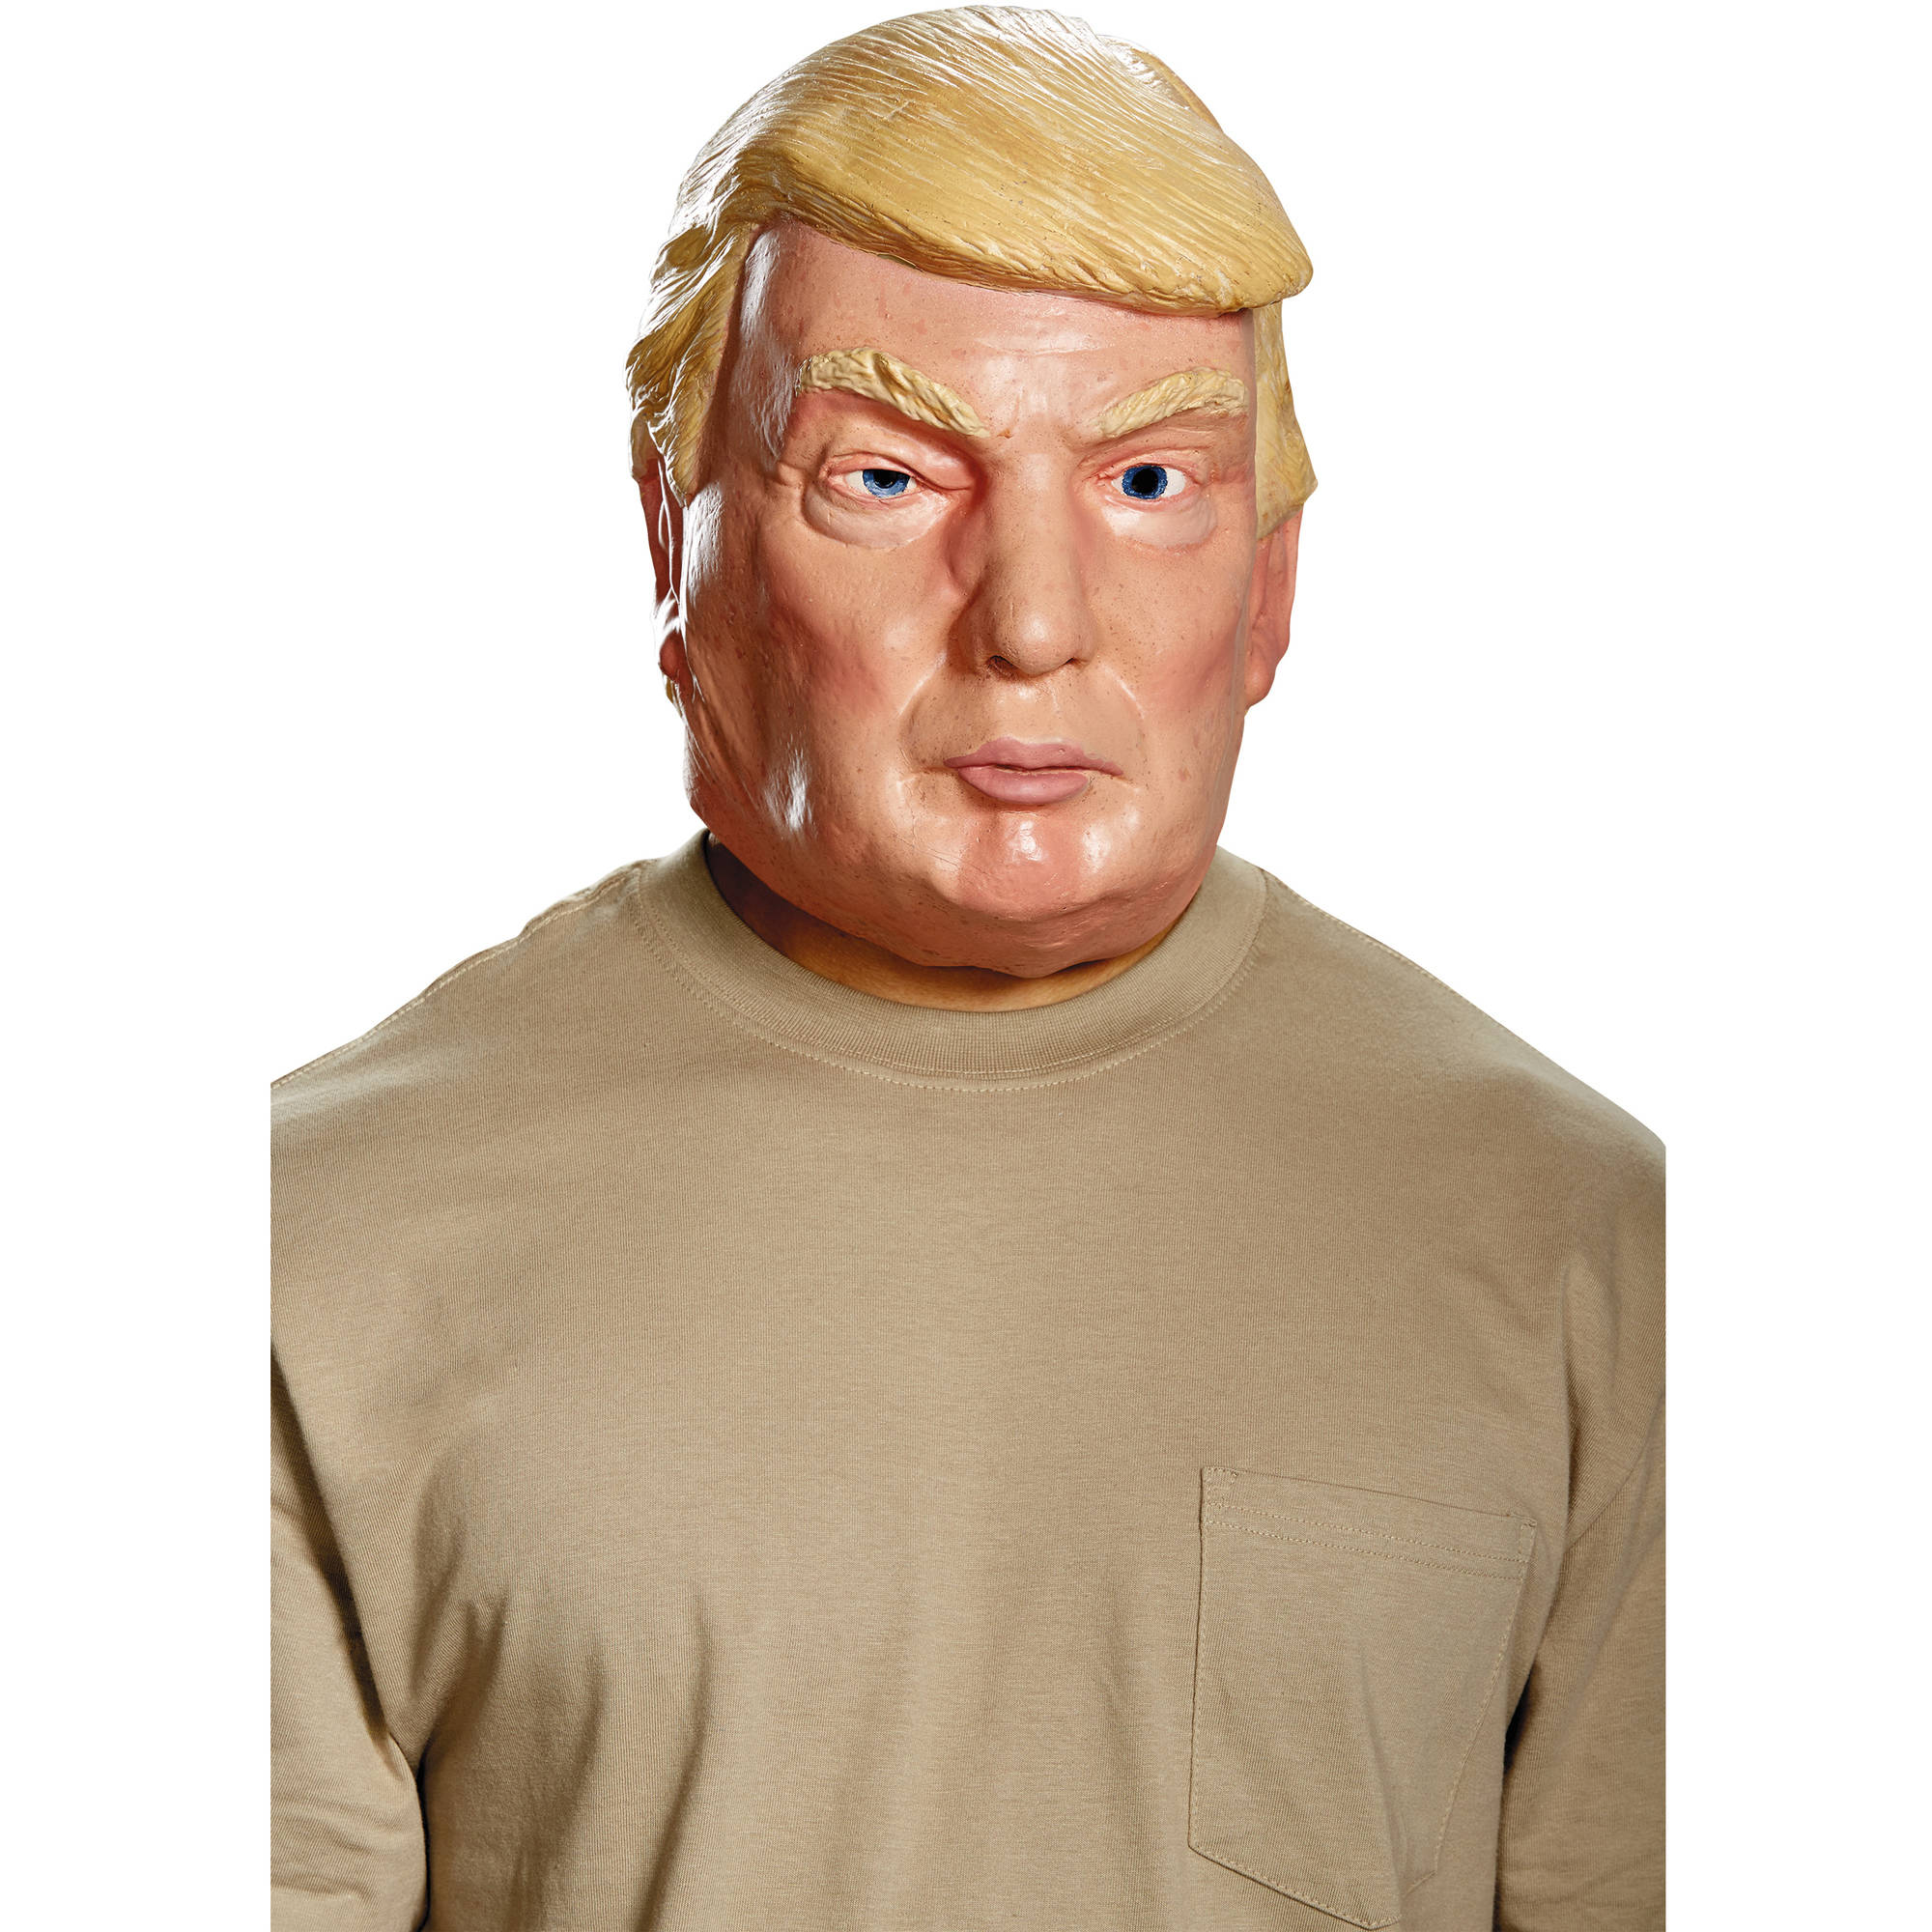 Image result for kid in Trump Halloween mask